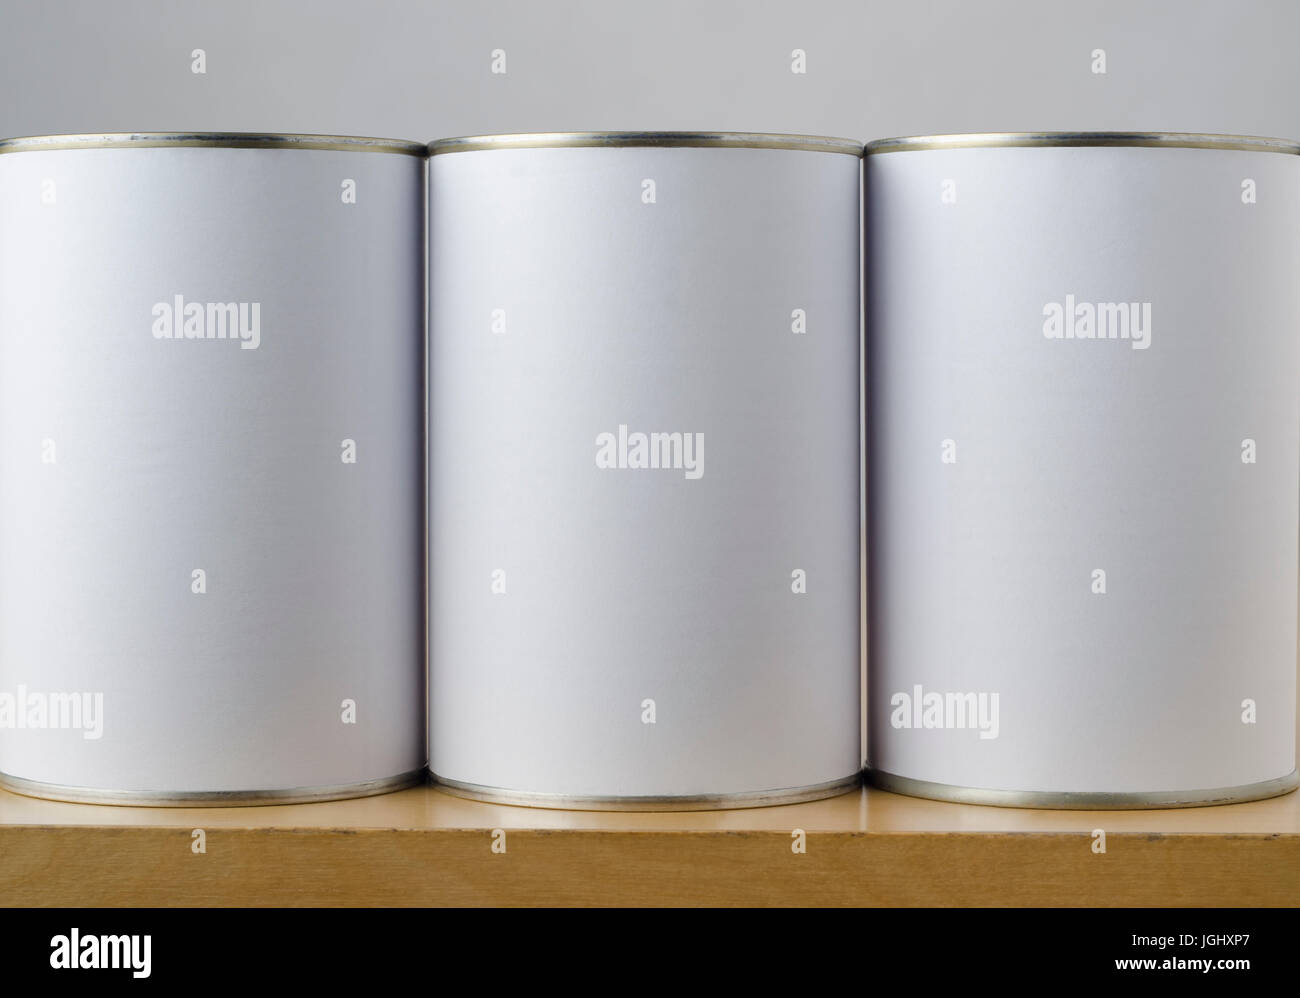 Conceptual image of three tin cans with blank white paper labels on a shelf, copy space on labels allows inclusion - Stock Image